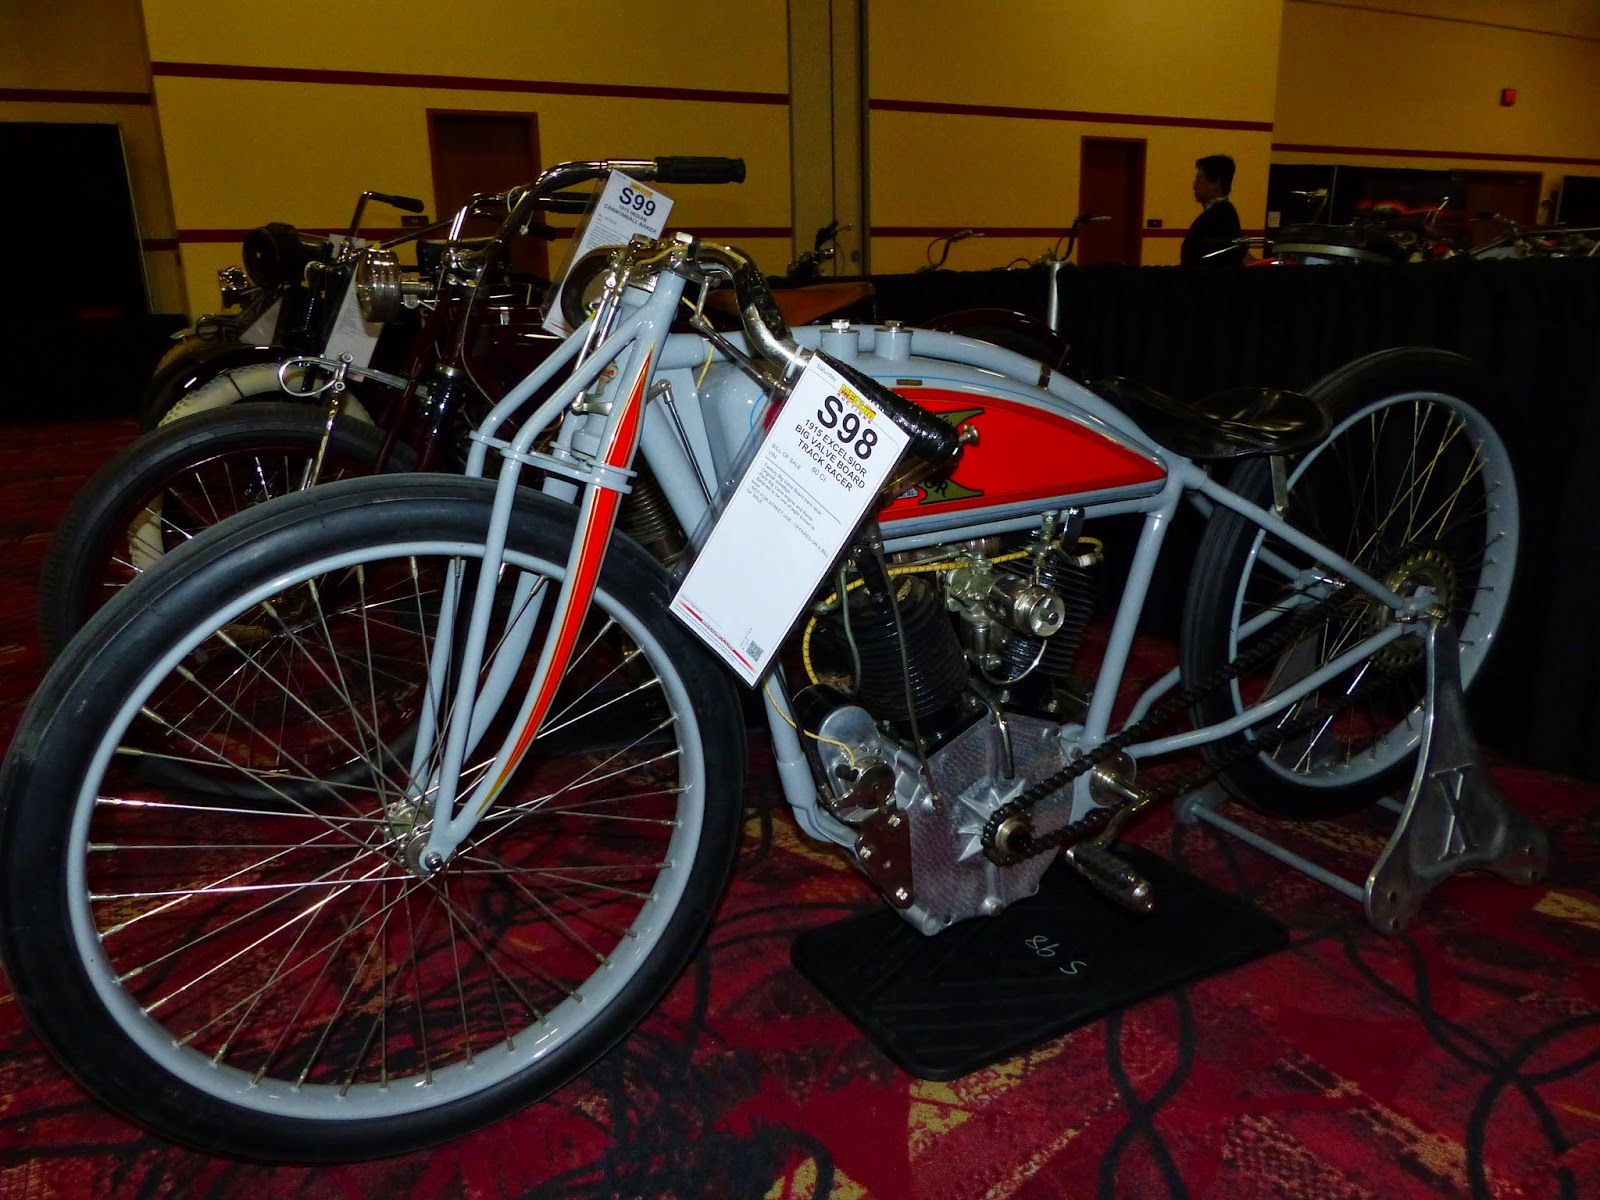 1915 Excelsior Board Track Racer For Sale At The 2015 Mecum Las Vegas Motorcycle Auction